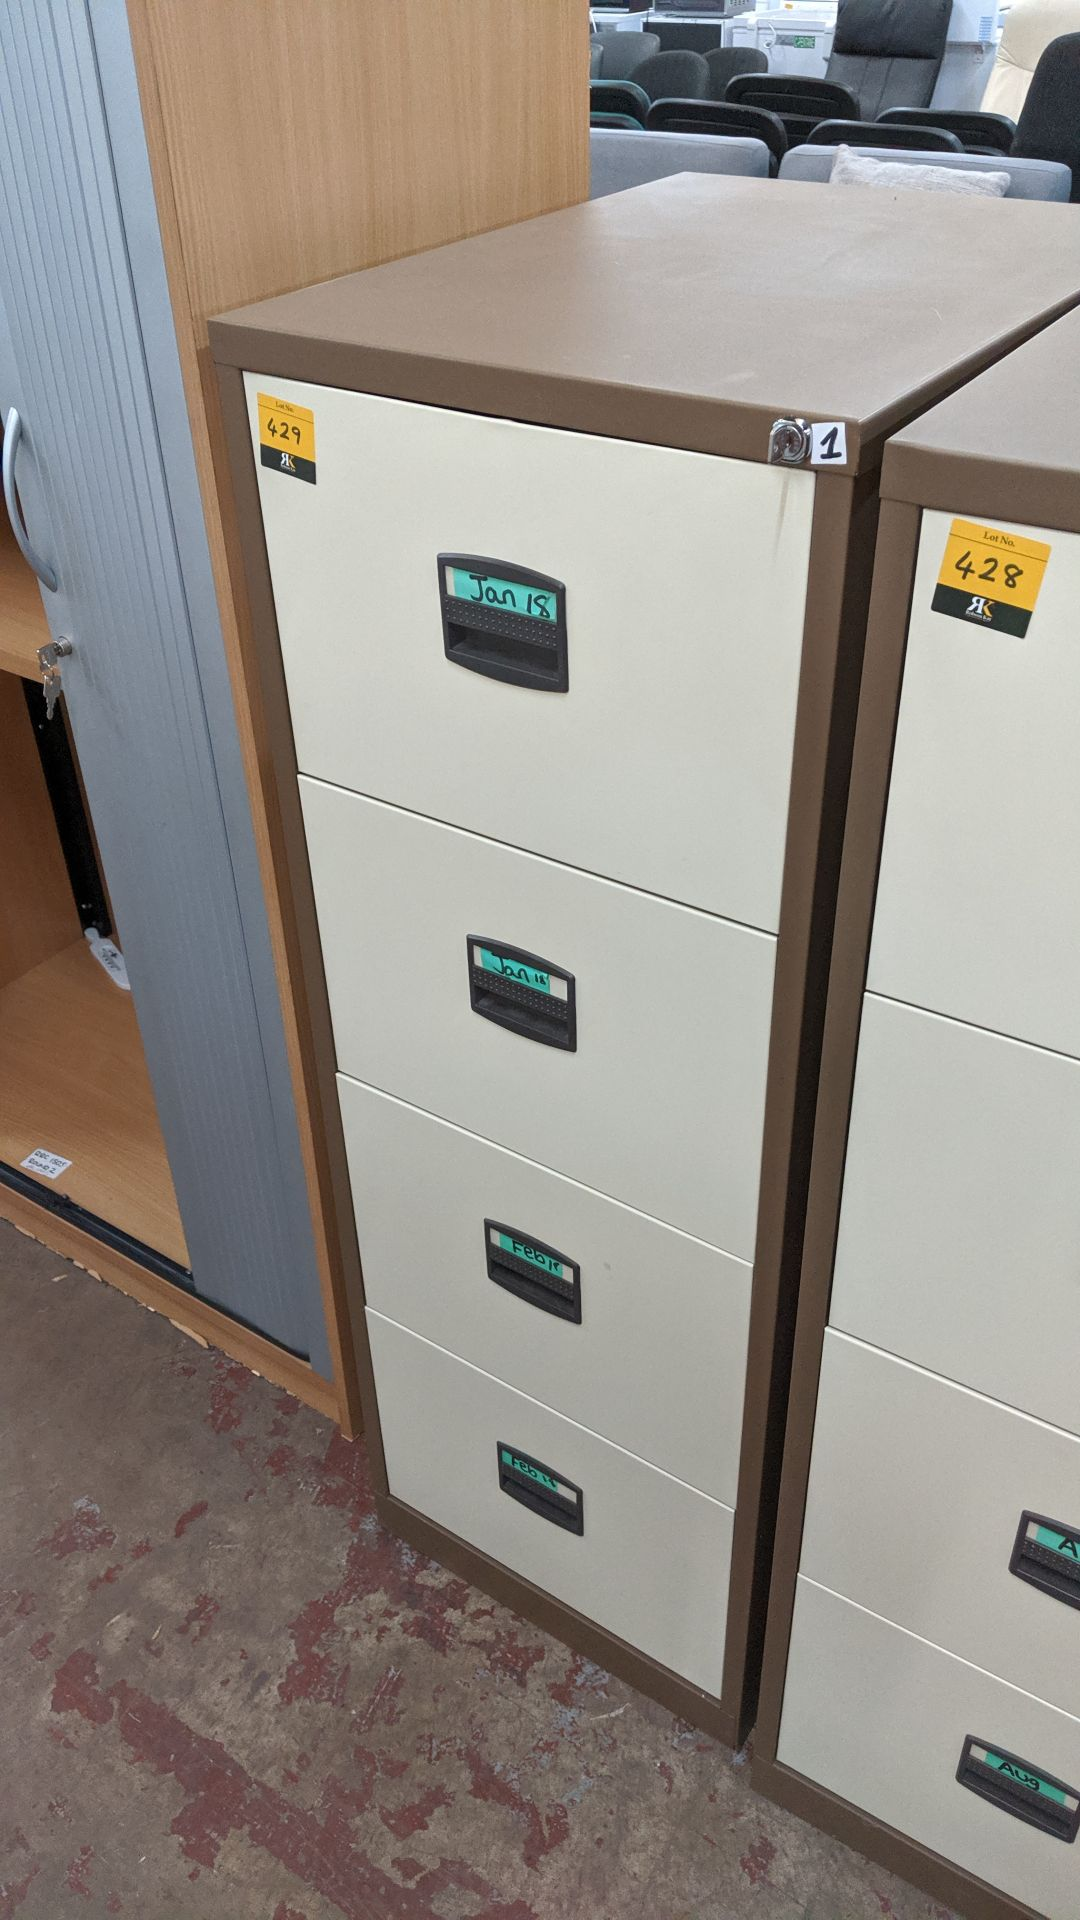 Lot 429 - Brown metal 4-drawer filing cabinet with key. This is one of a large number of lots used/owned by